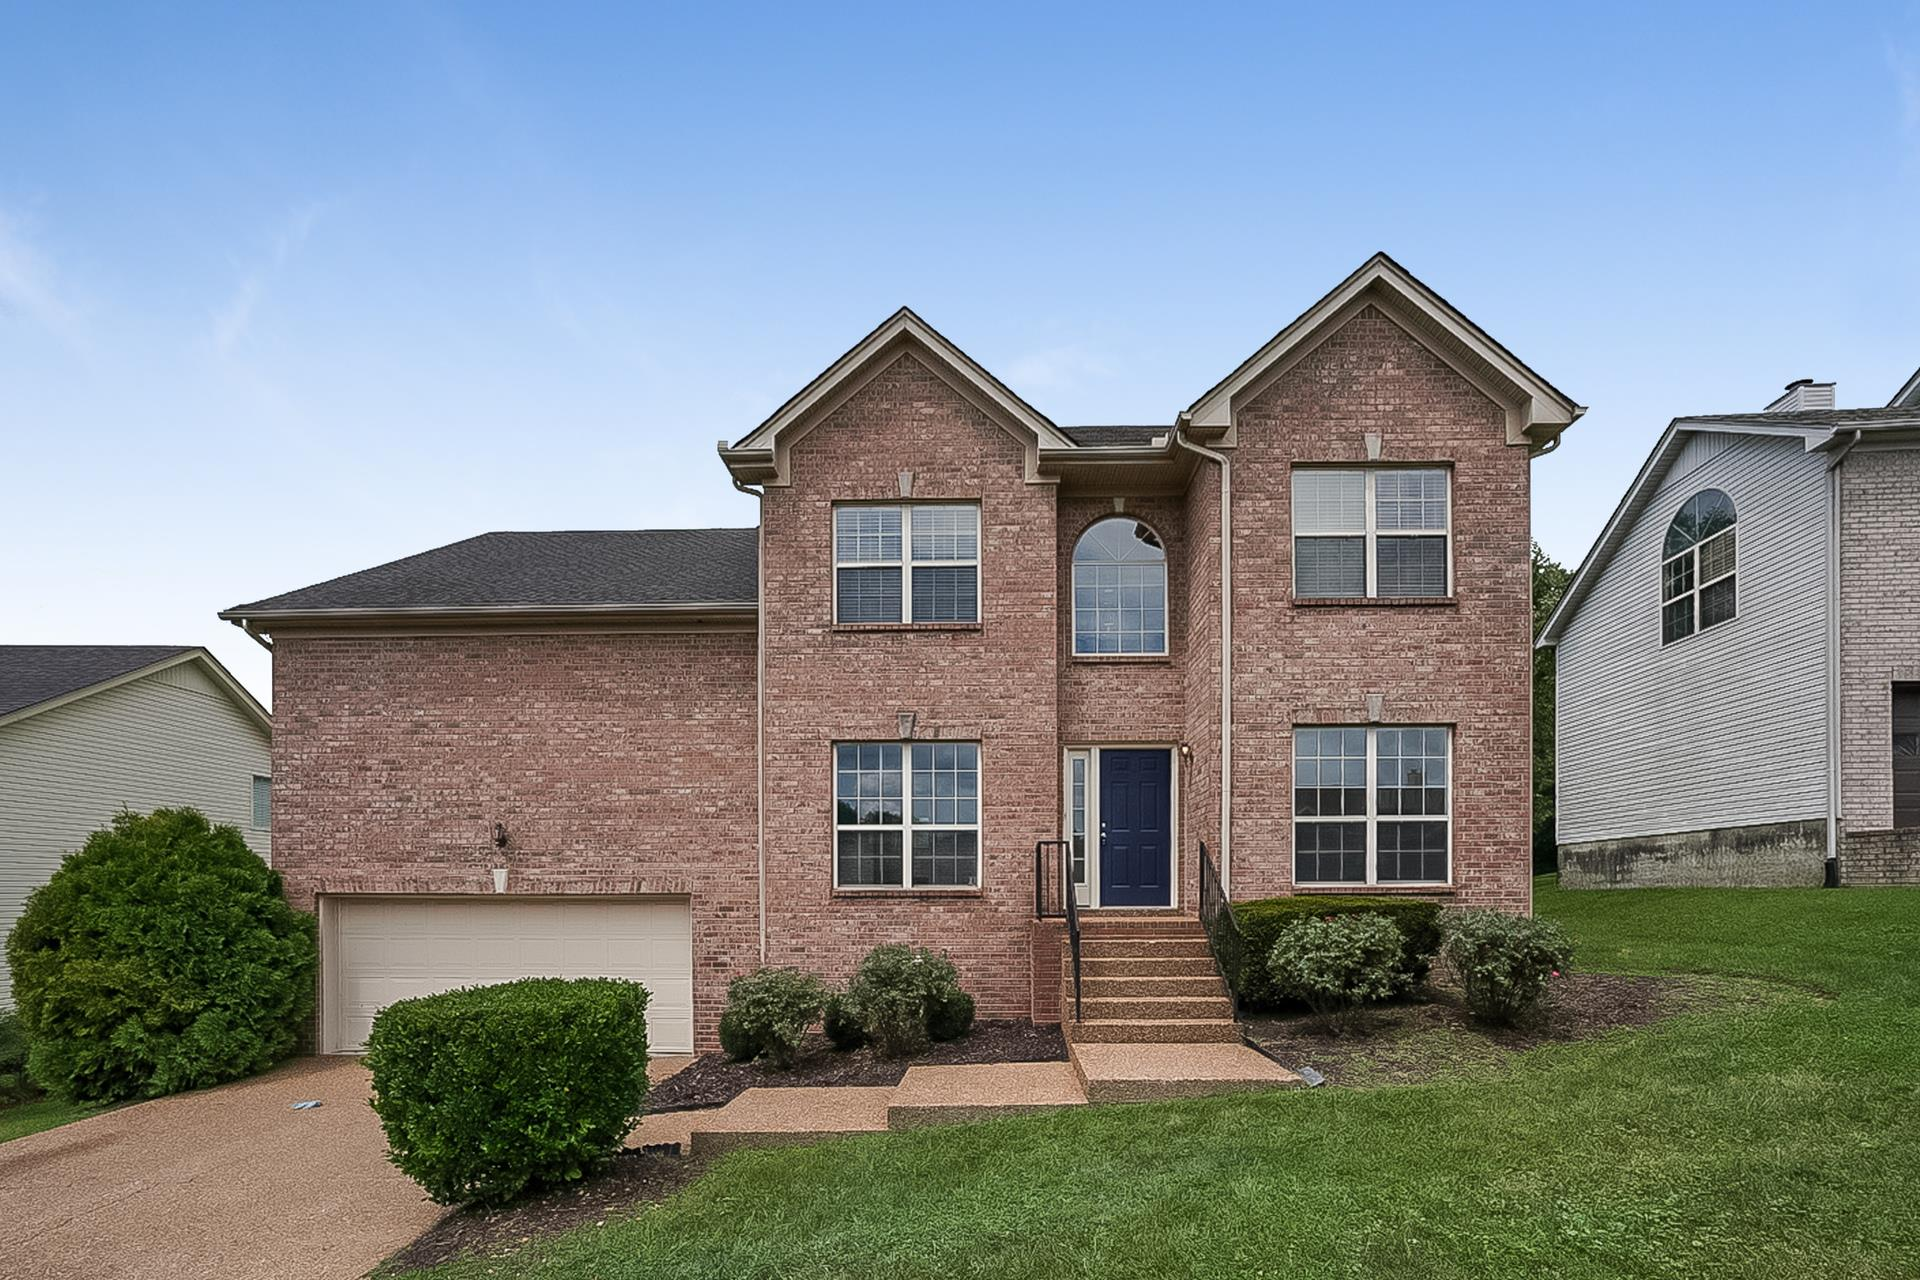 146 Braxton Park Ln, Goodlettsville, TN 37072 - Goodlettsville, TN real estate listing